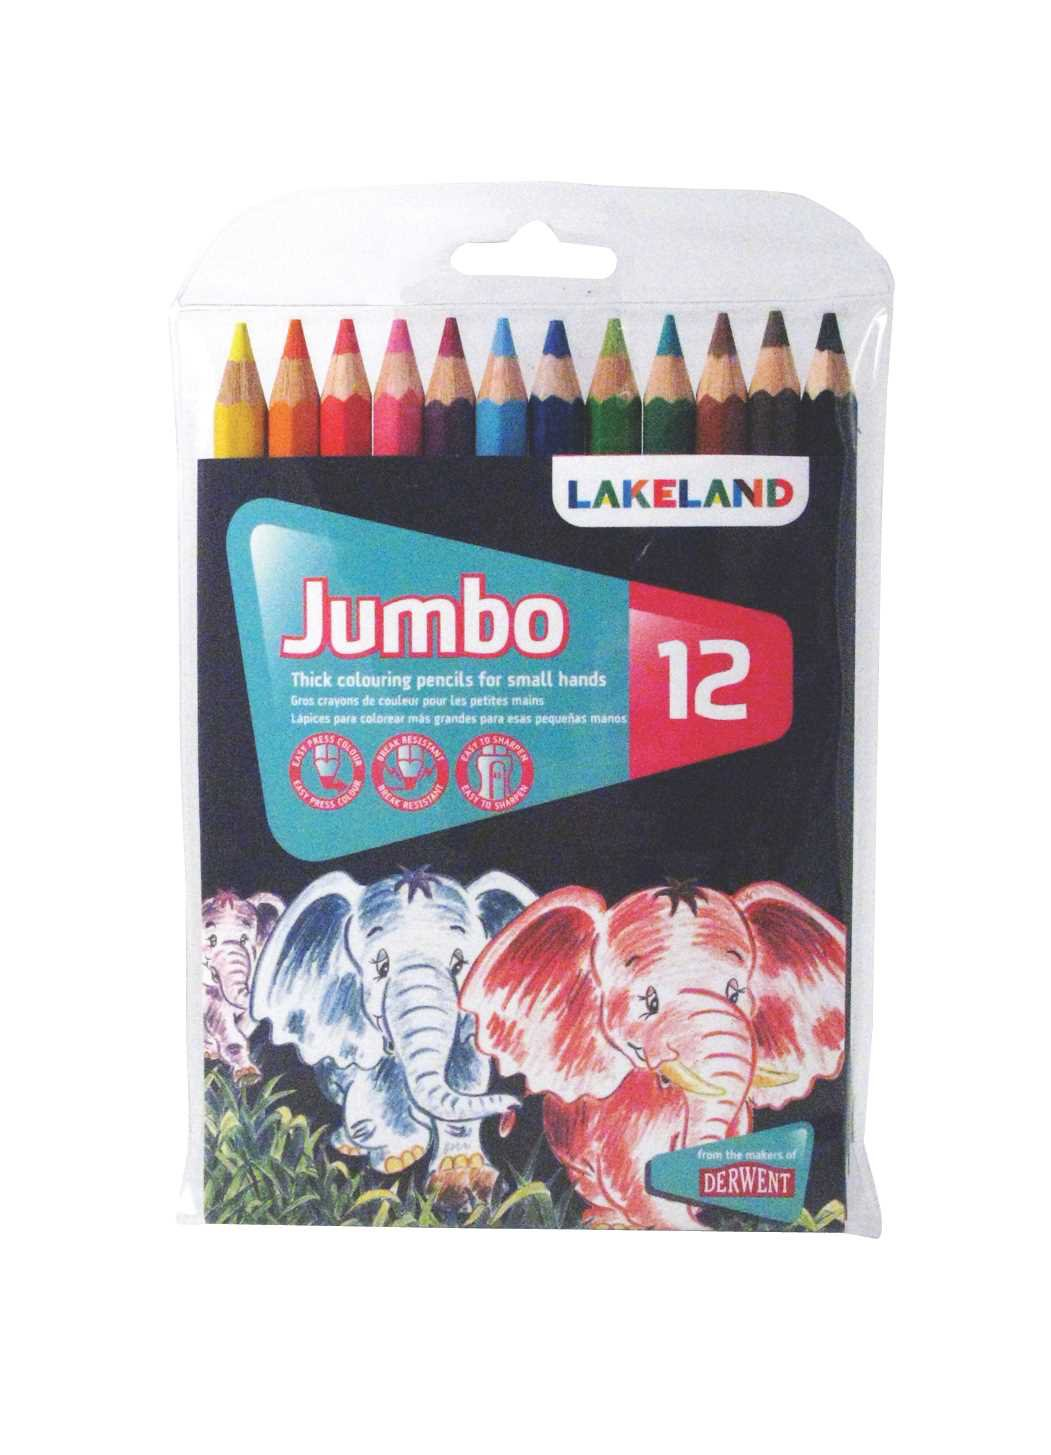 Derwent Lakeland Jumbo Coloring Pencils, 5.4mm Core, Pack, 12 Count (33326)